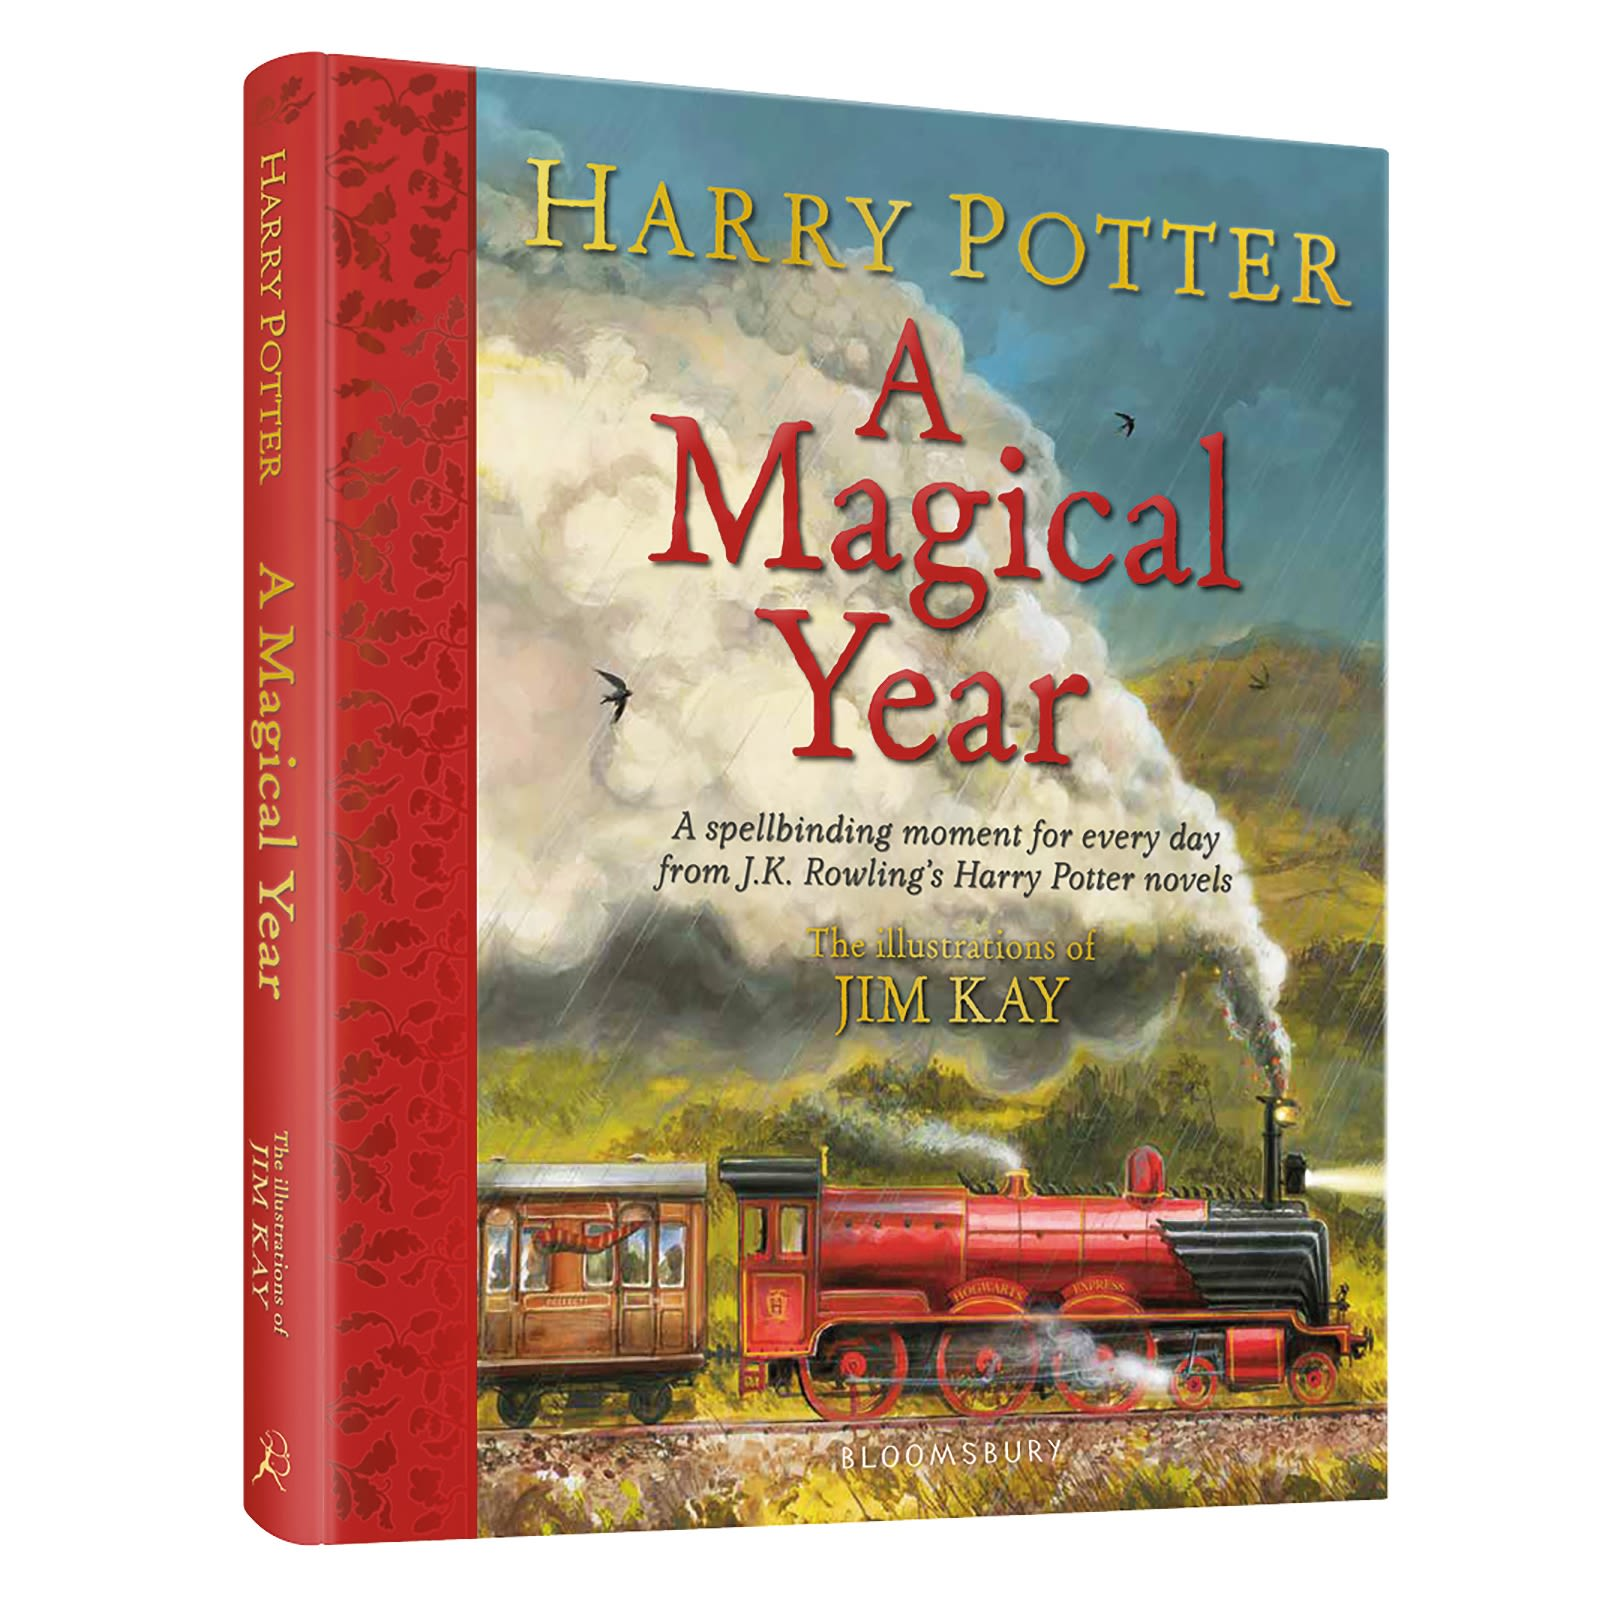 HARRY POTTER: A MAGICAL YEAR (THE ILLUSTRATIONS OF JIM KAY) (HC) (เฉพาะจอง)